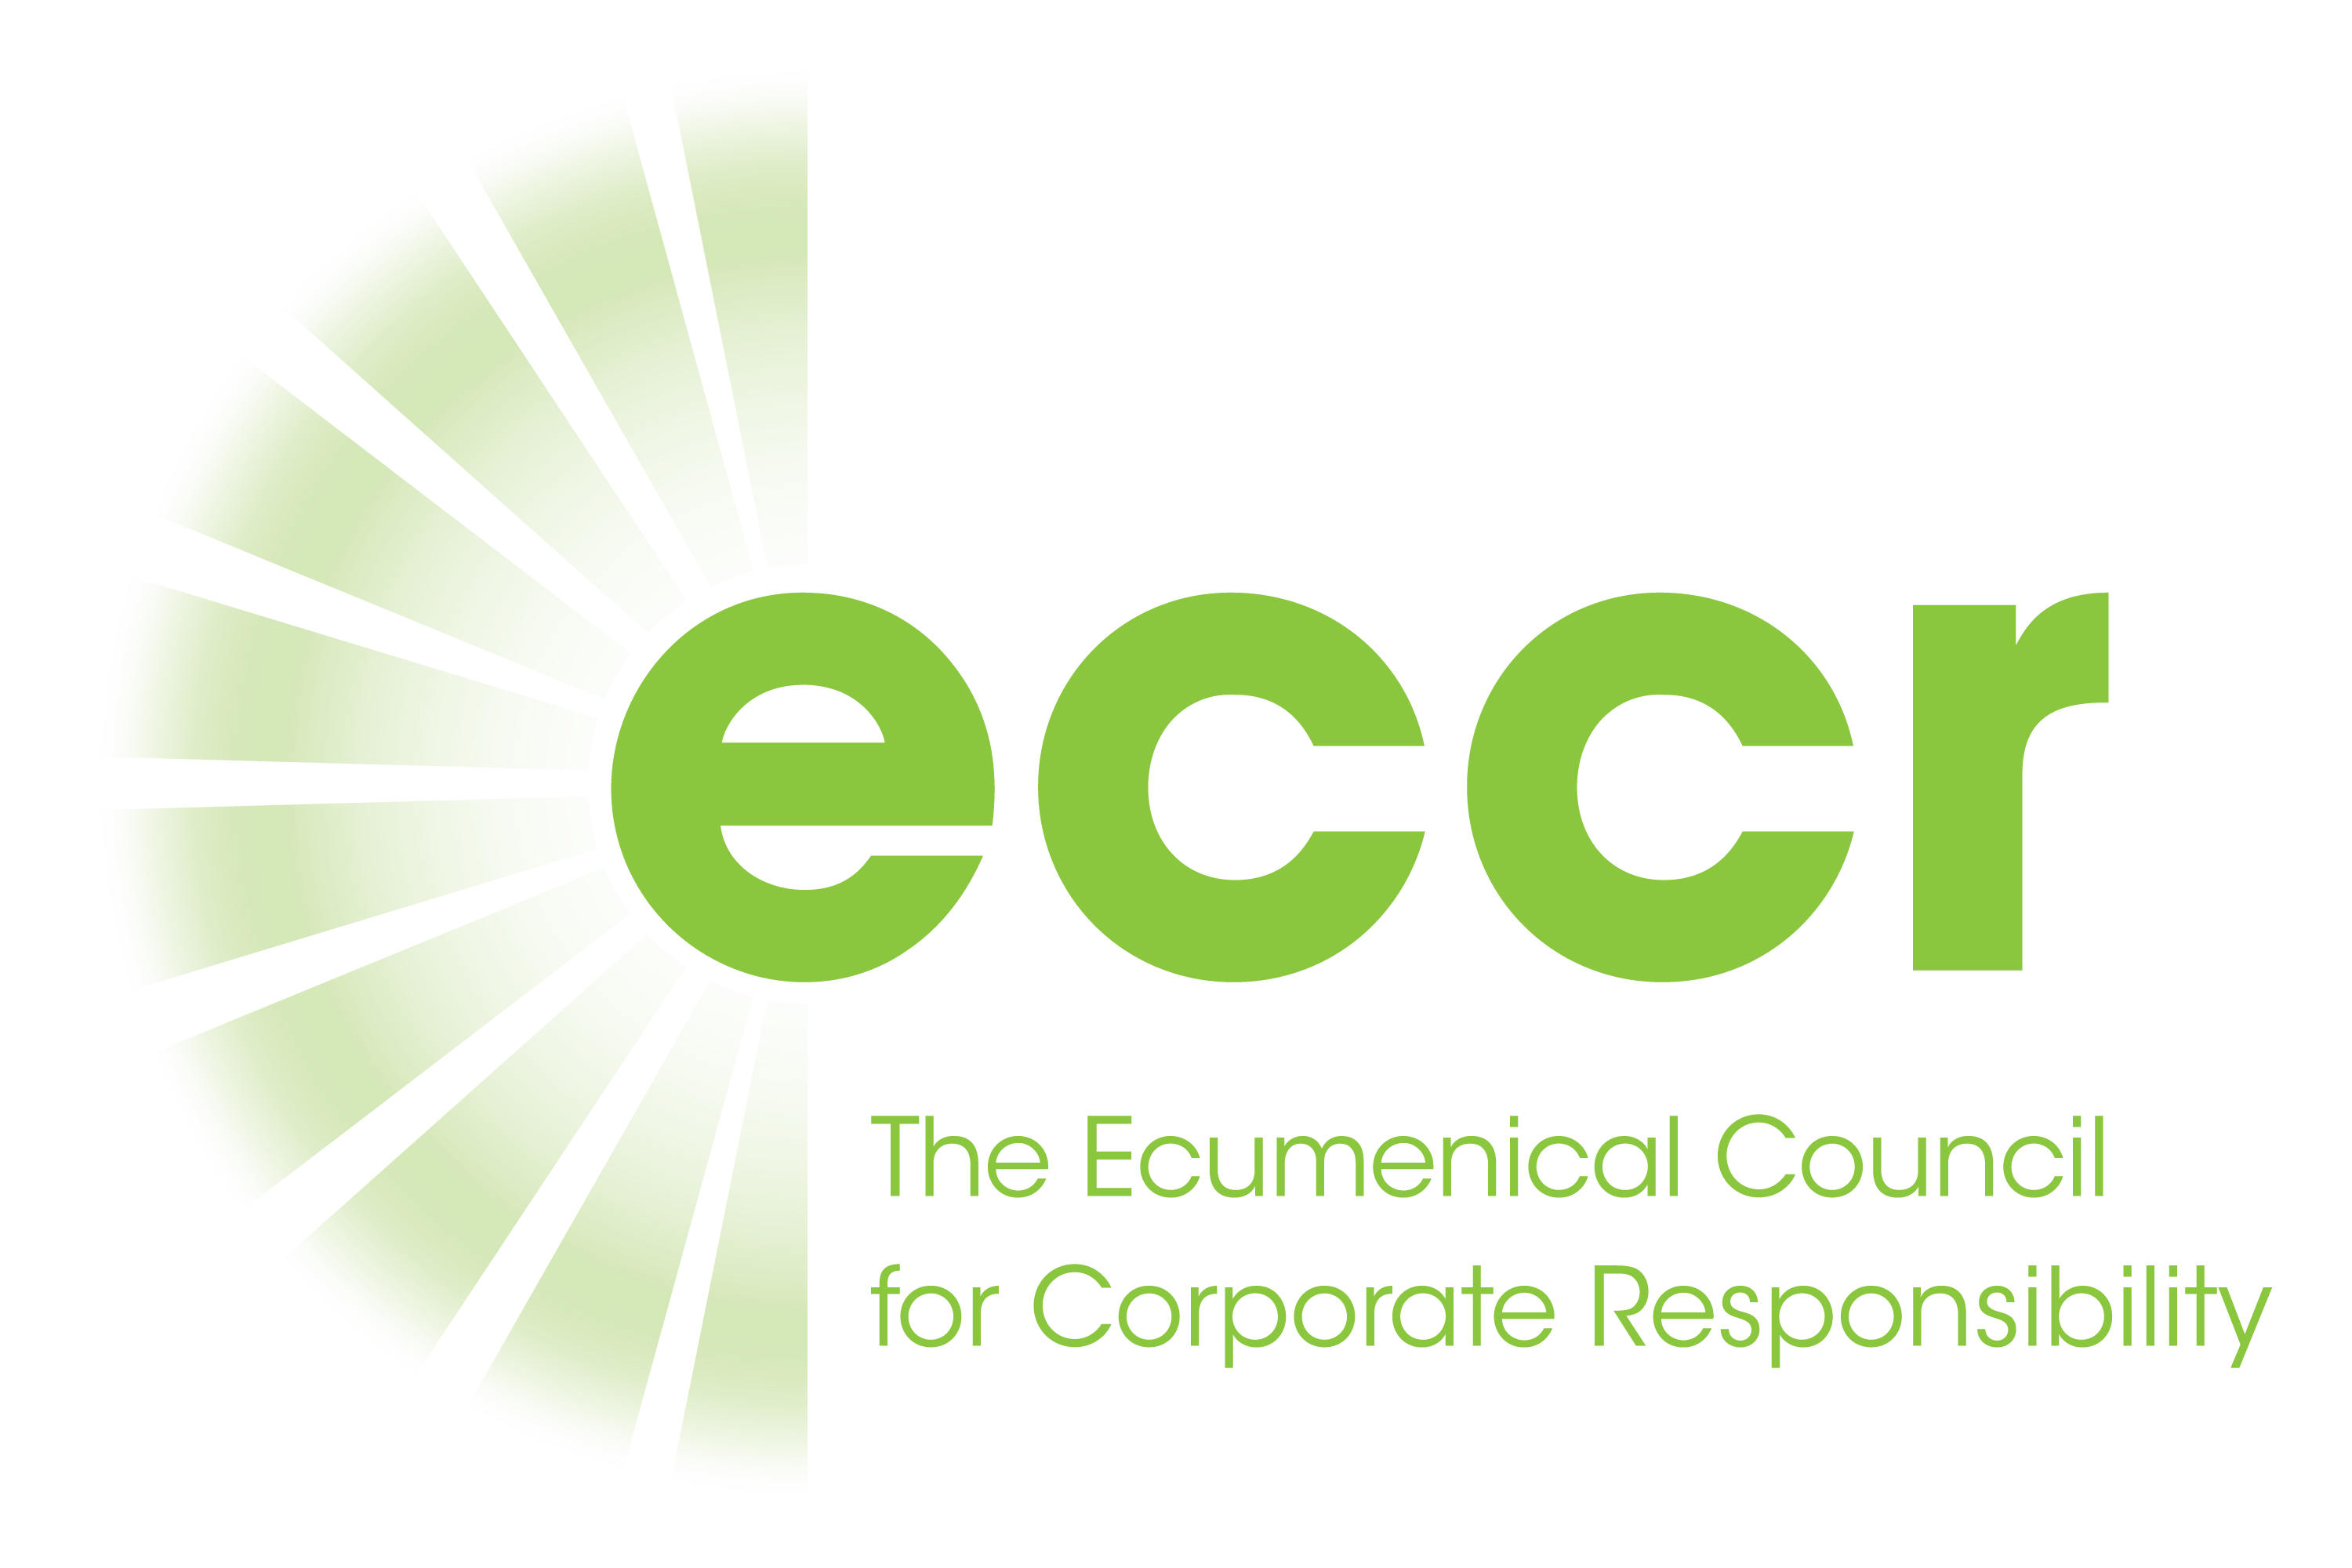 Ecumenical Council for Corporate Responsibility (ECCR), The - company logo